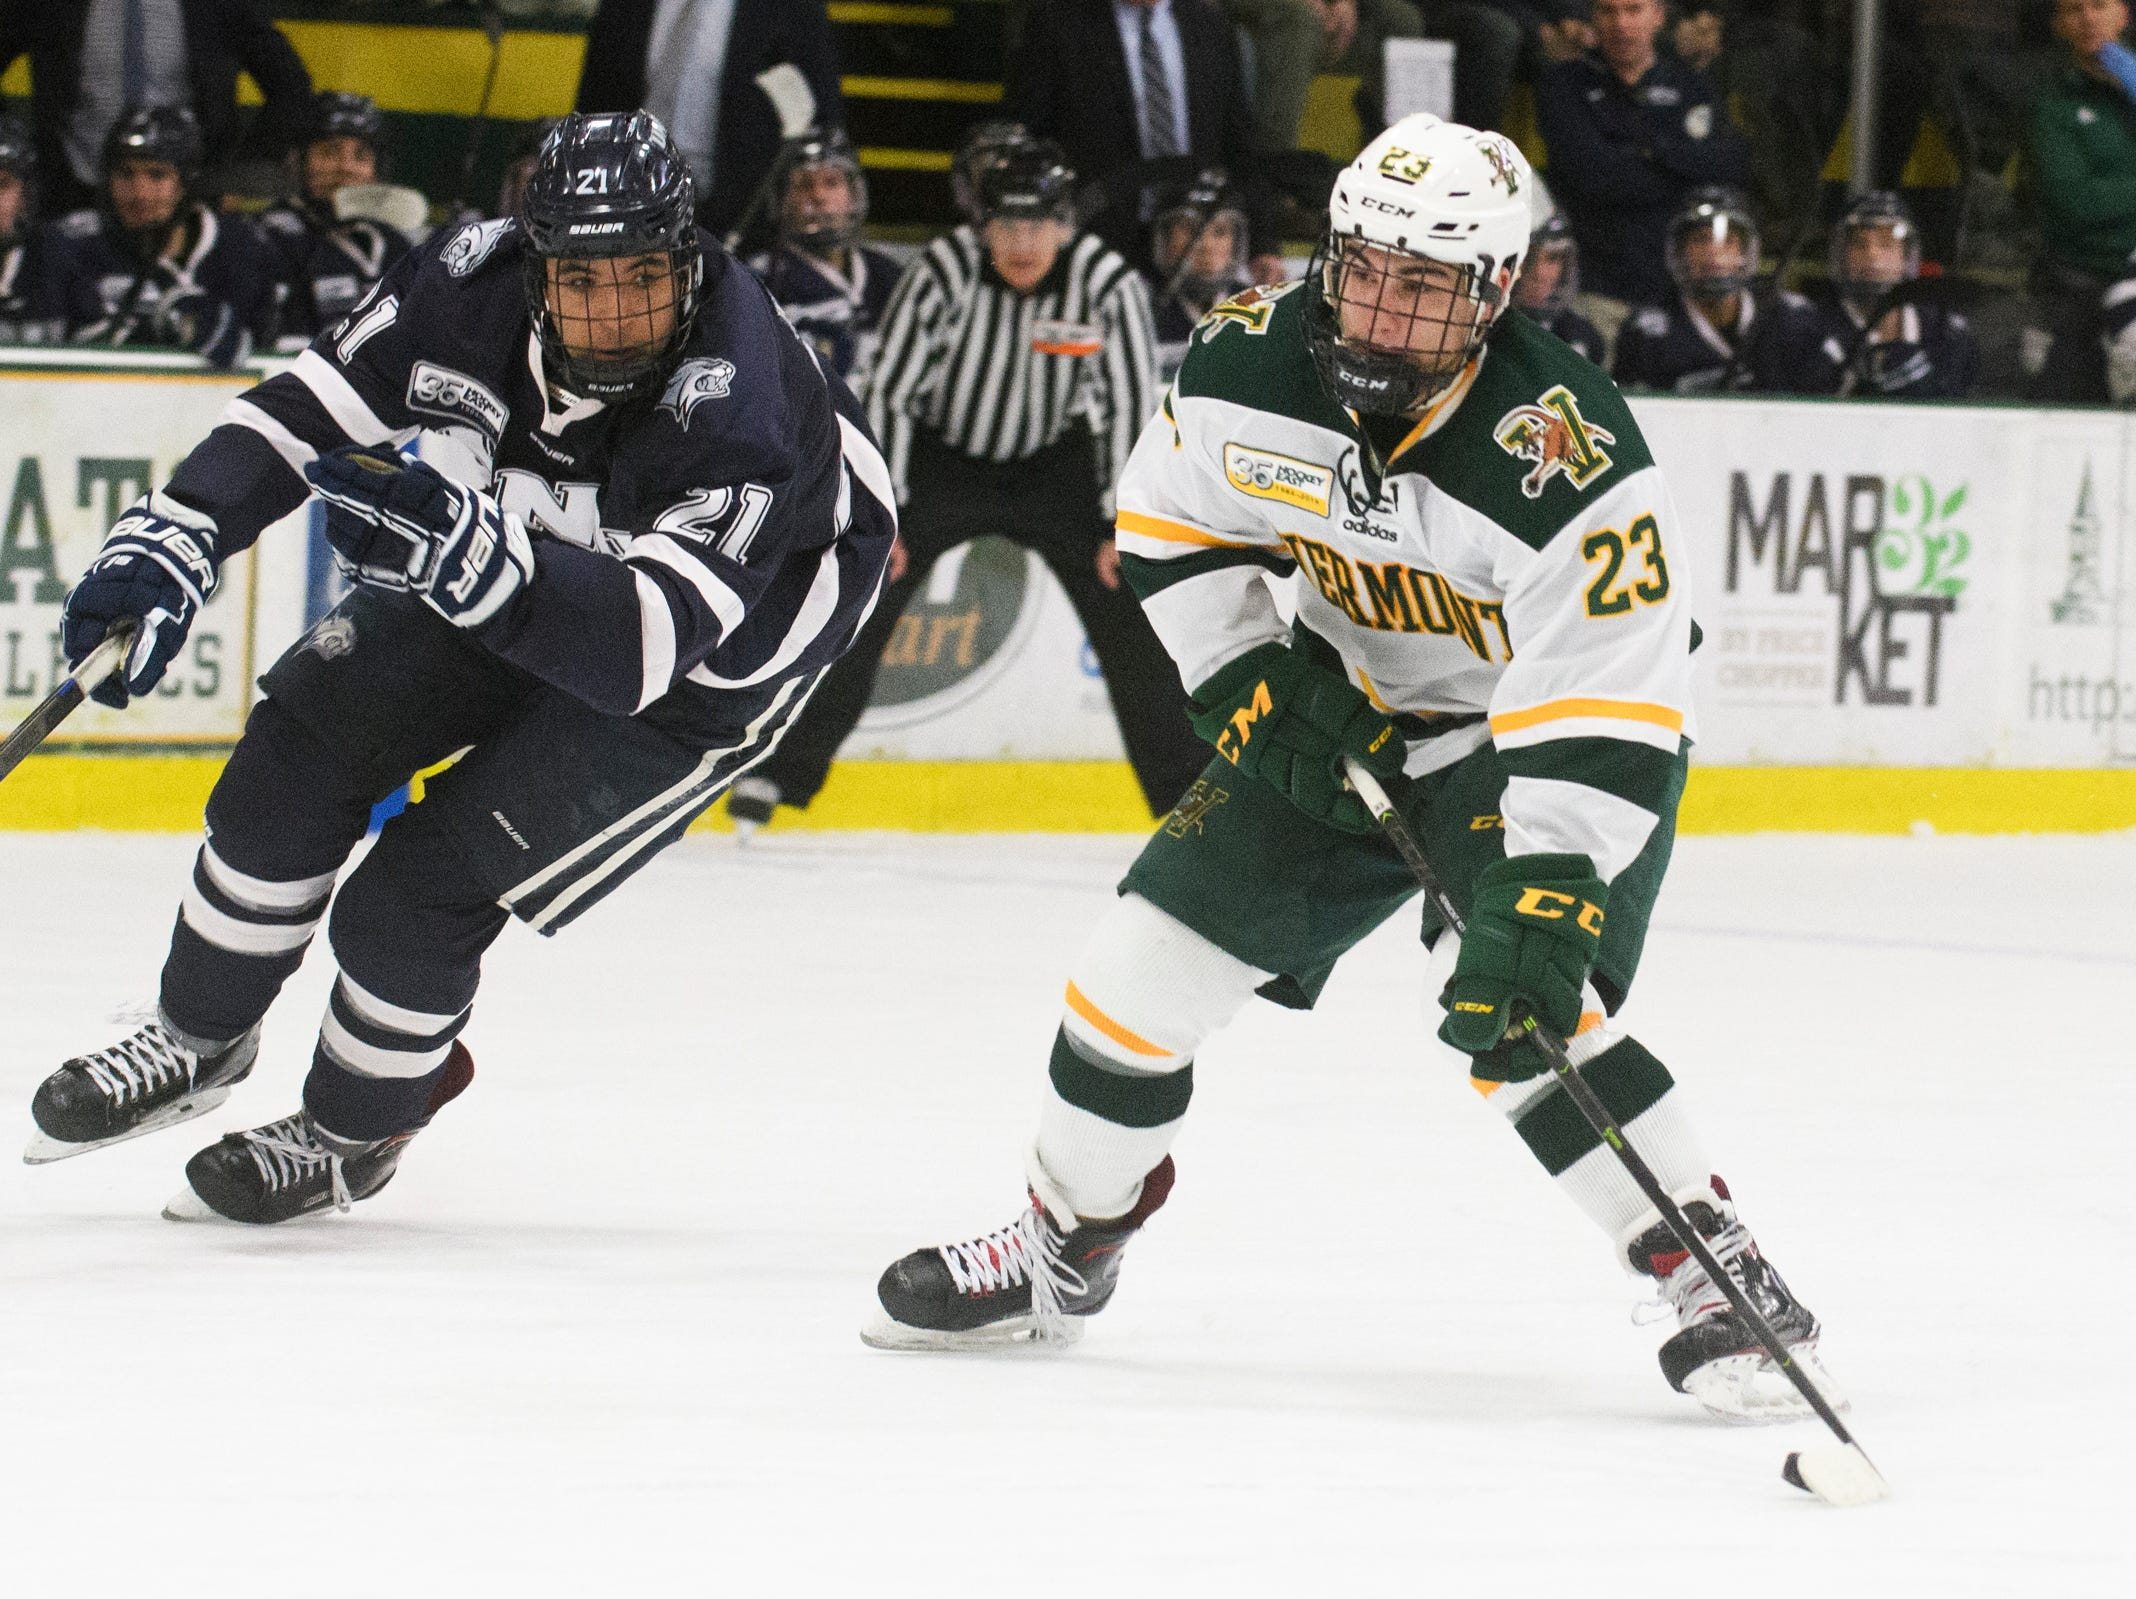 Vermont forward Max Kaufman (23) looks to take a shot during the men's hockey game between the New Hampshire Wildcats and the Vermont Catamounts at Gutterson Field House on Friday night February 8, 2019 in Burlington, Vermont.